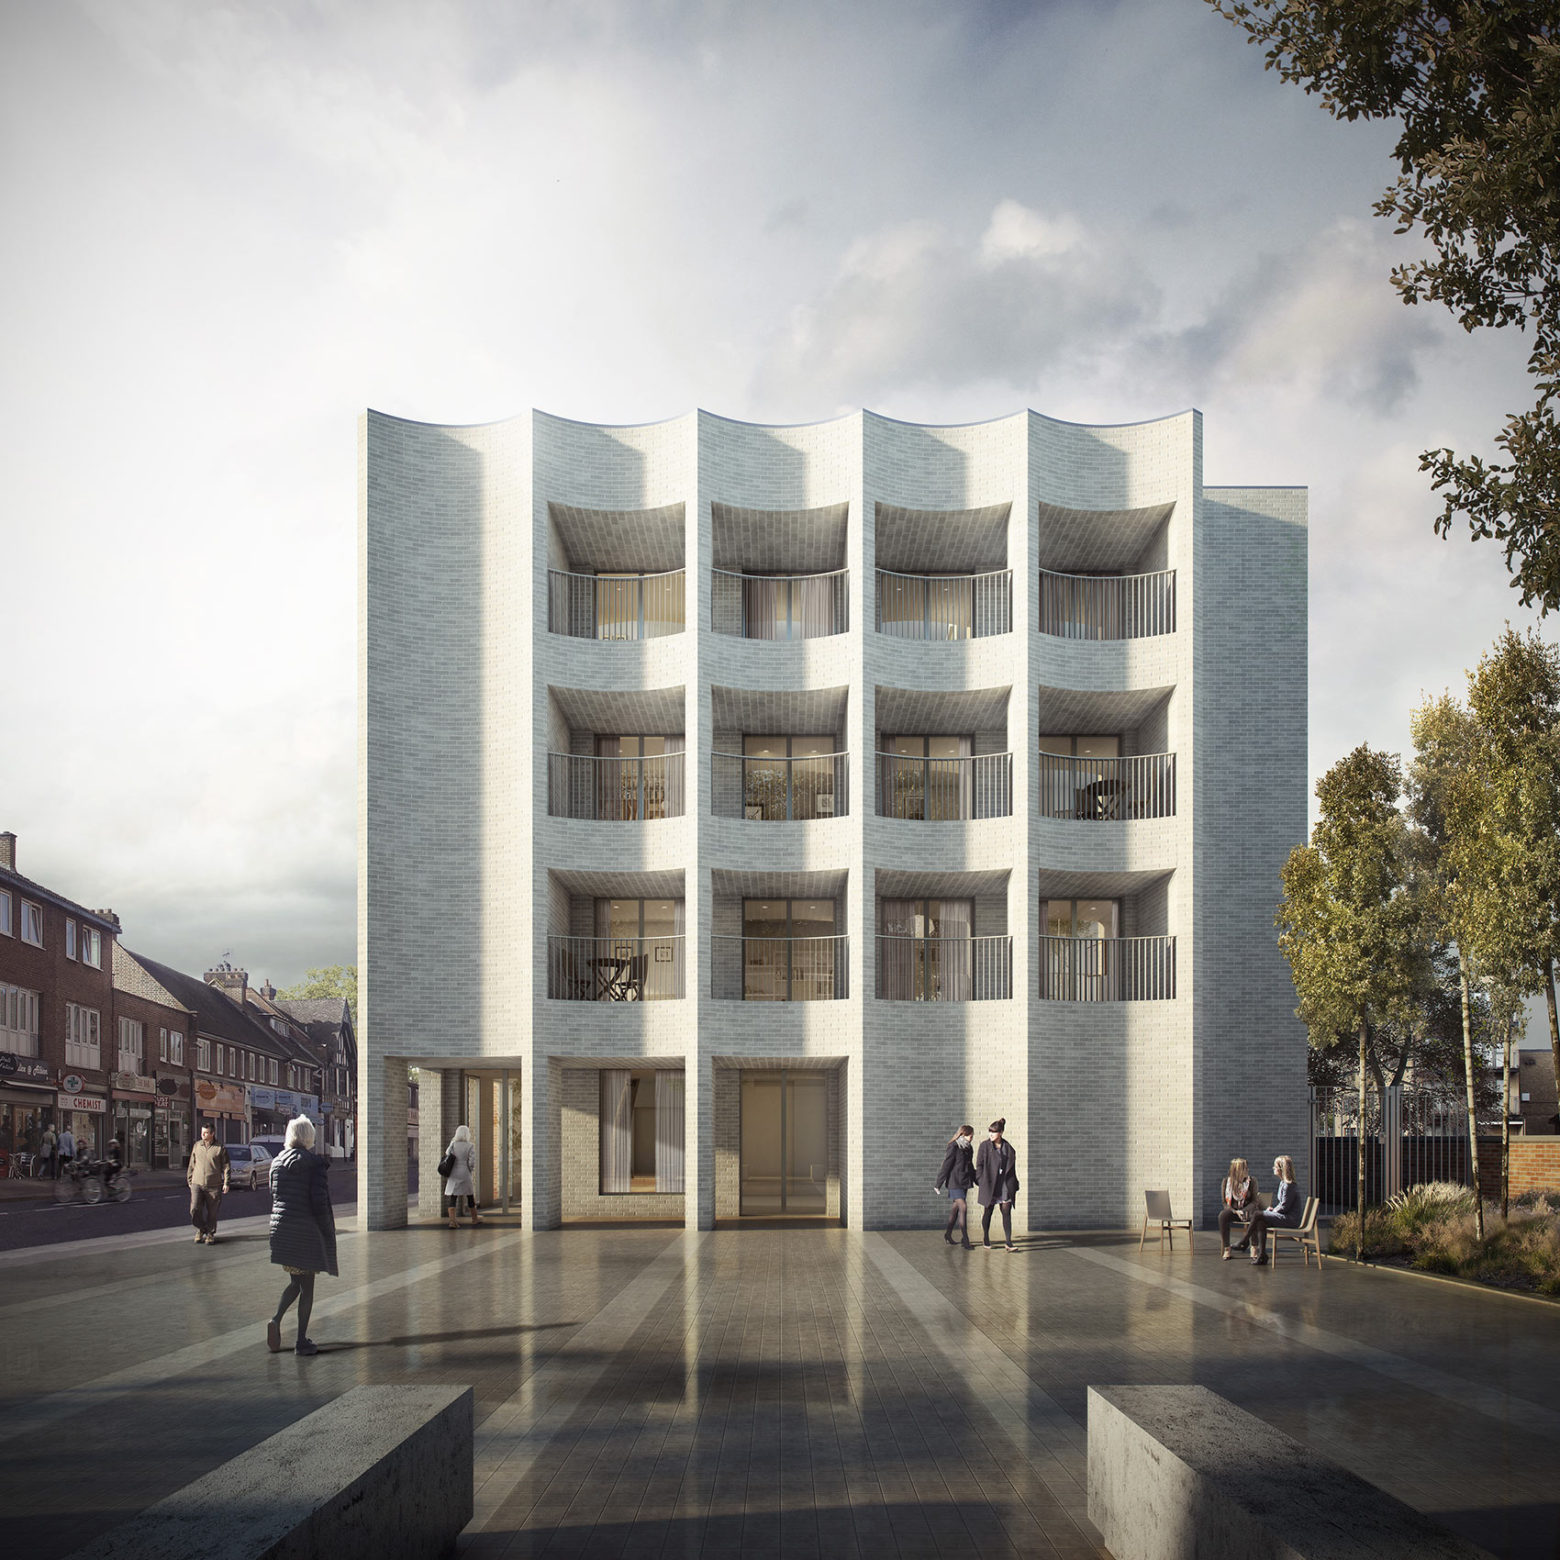 Planning consent granted for new homes in Southwark